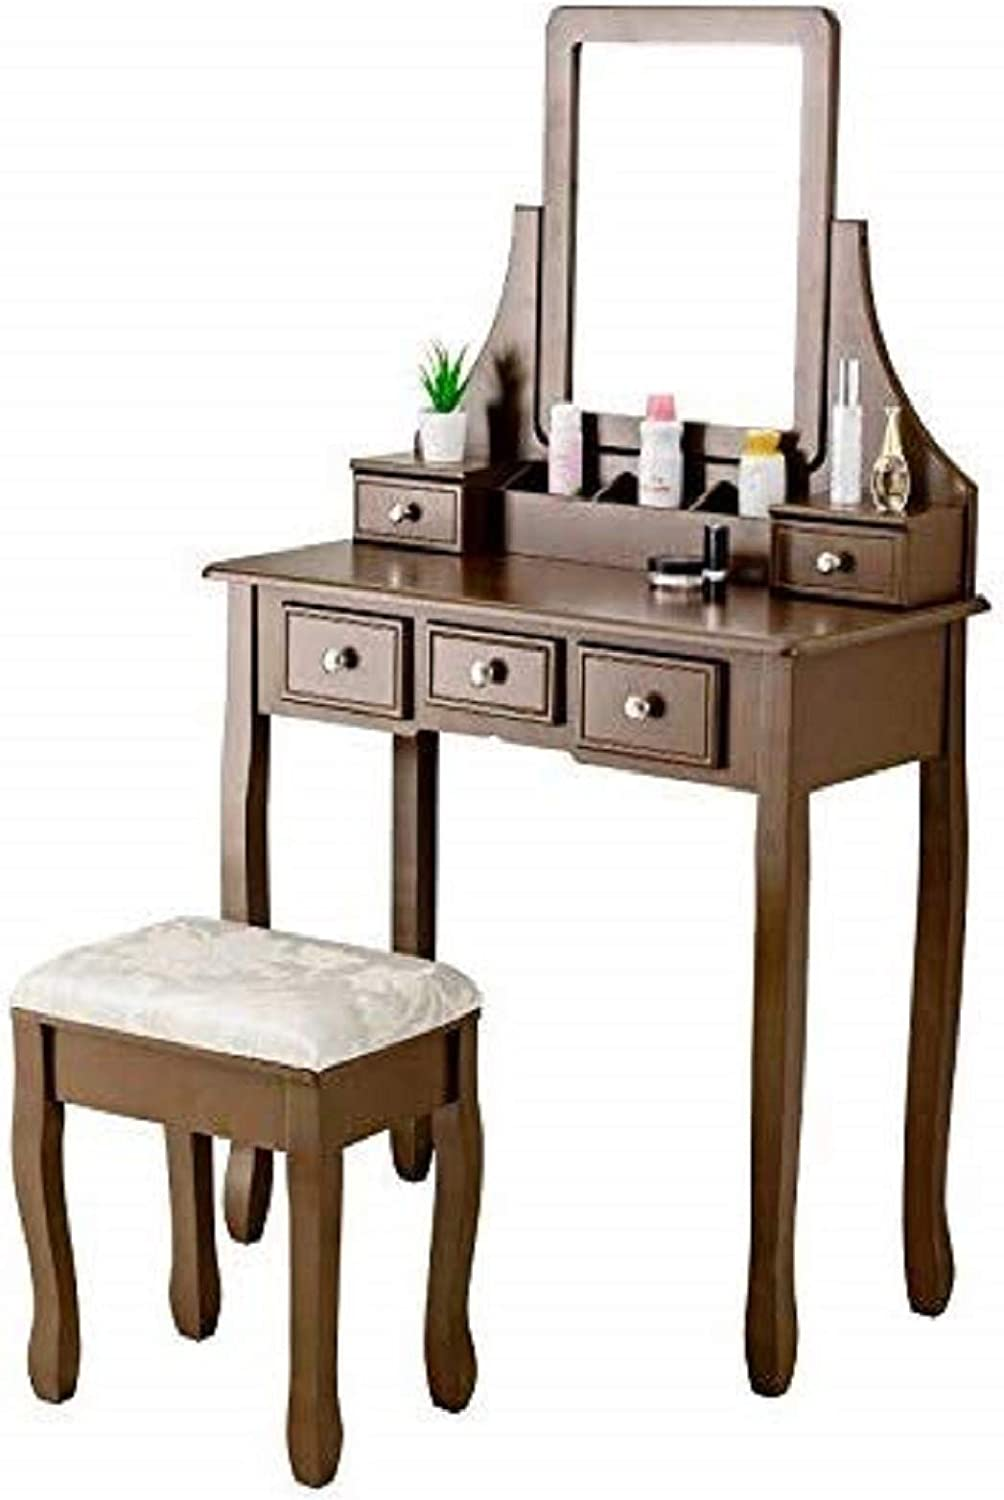 Mecor Vanity Table Set with Stool, Wooden Dressing Table w Square Mirror 5 Drawers, Women Girls Makeup Table 3 Removable Dividers Bedroom Furnitures Brown